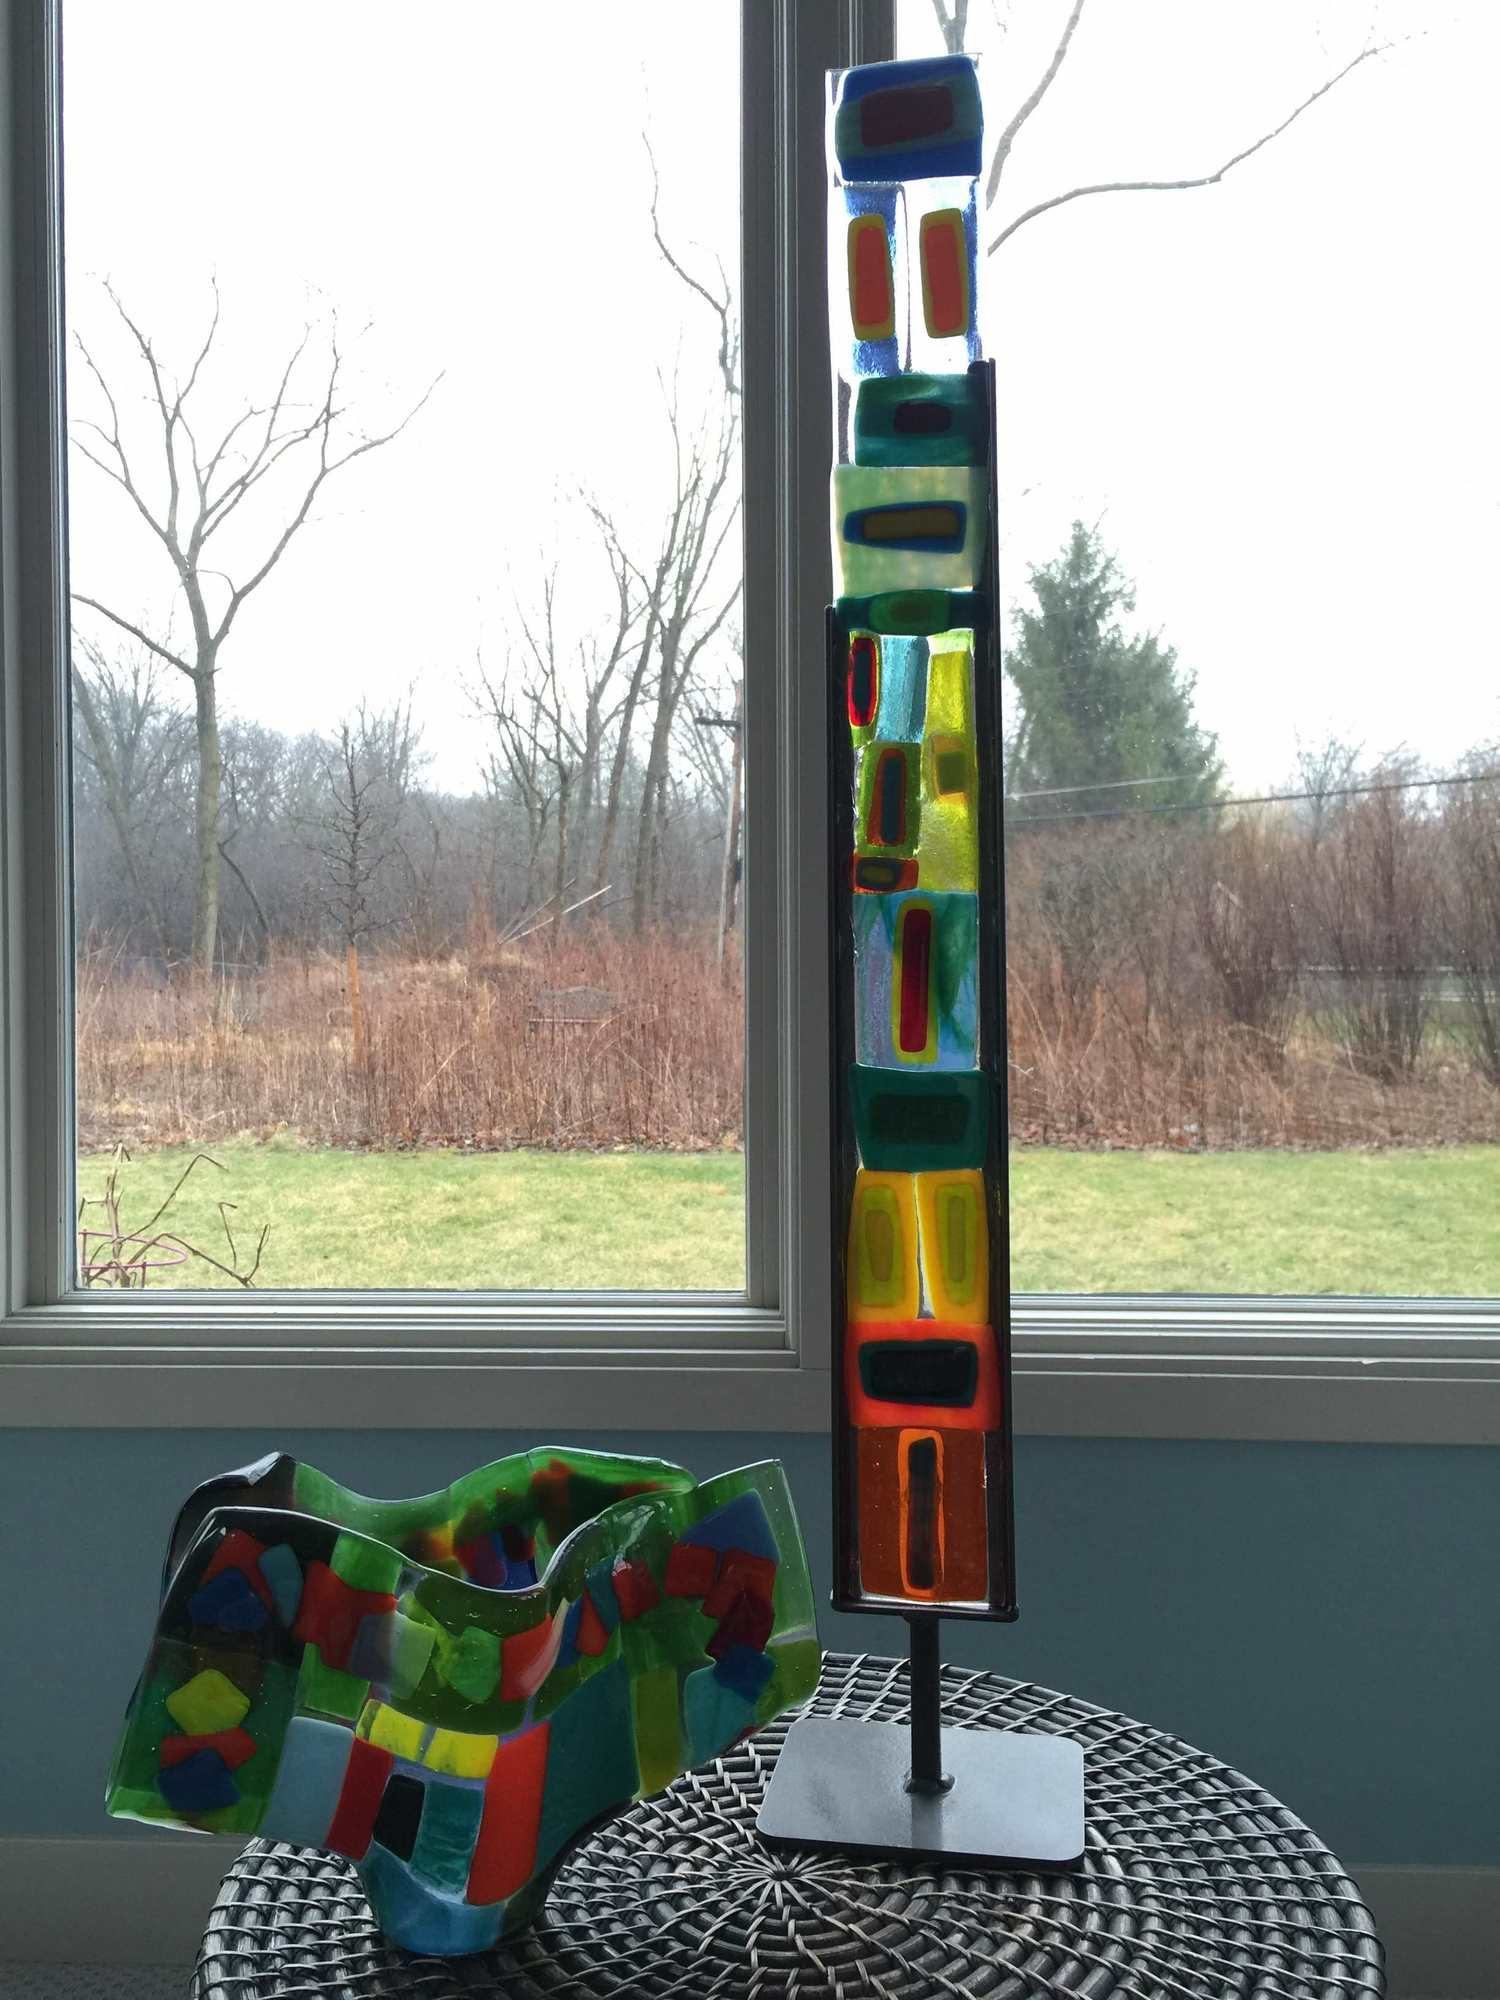 Two pieces of fused glass I have made at Hands On Art Studio over the years.